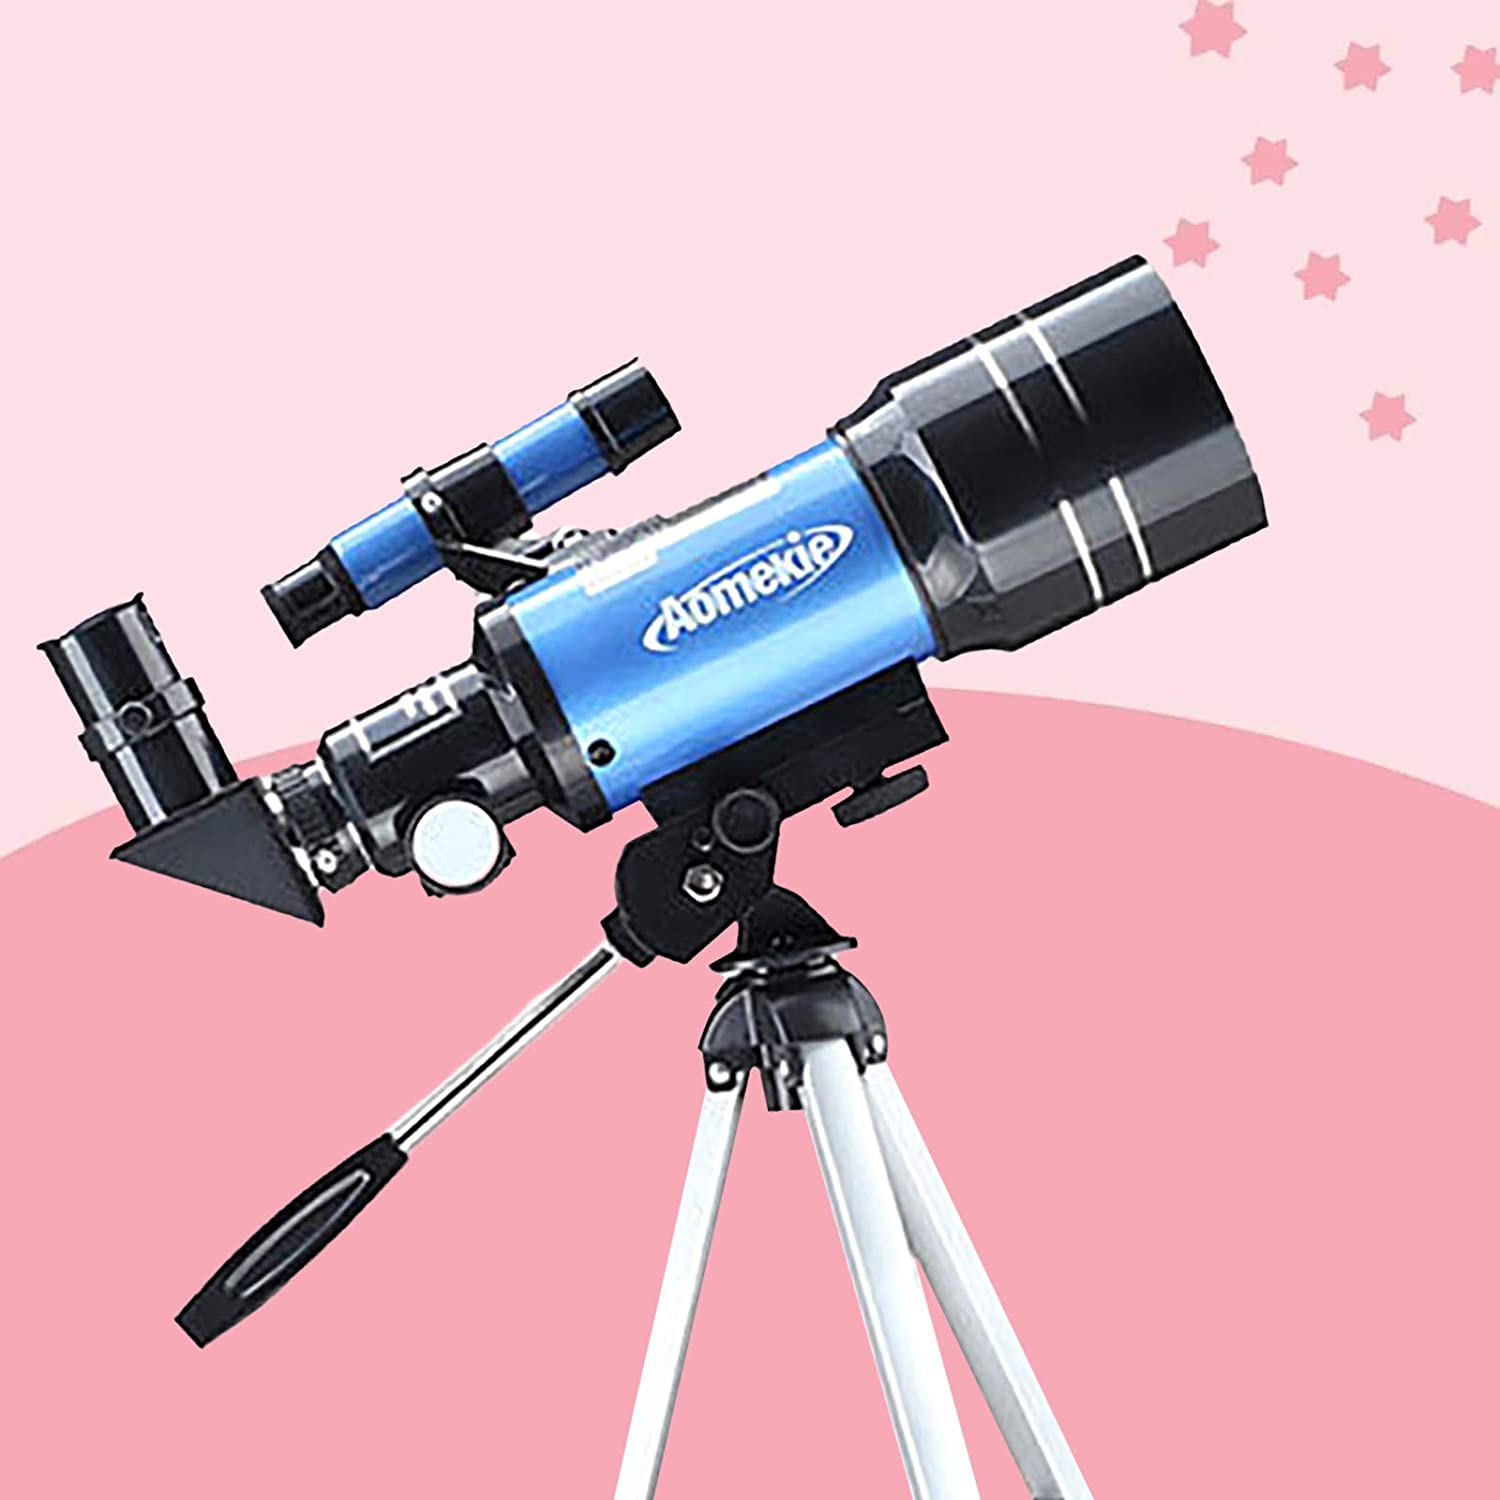 BEFOKA Science Entry Low cheap price Telescope for Beginners Kids H Astronomical